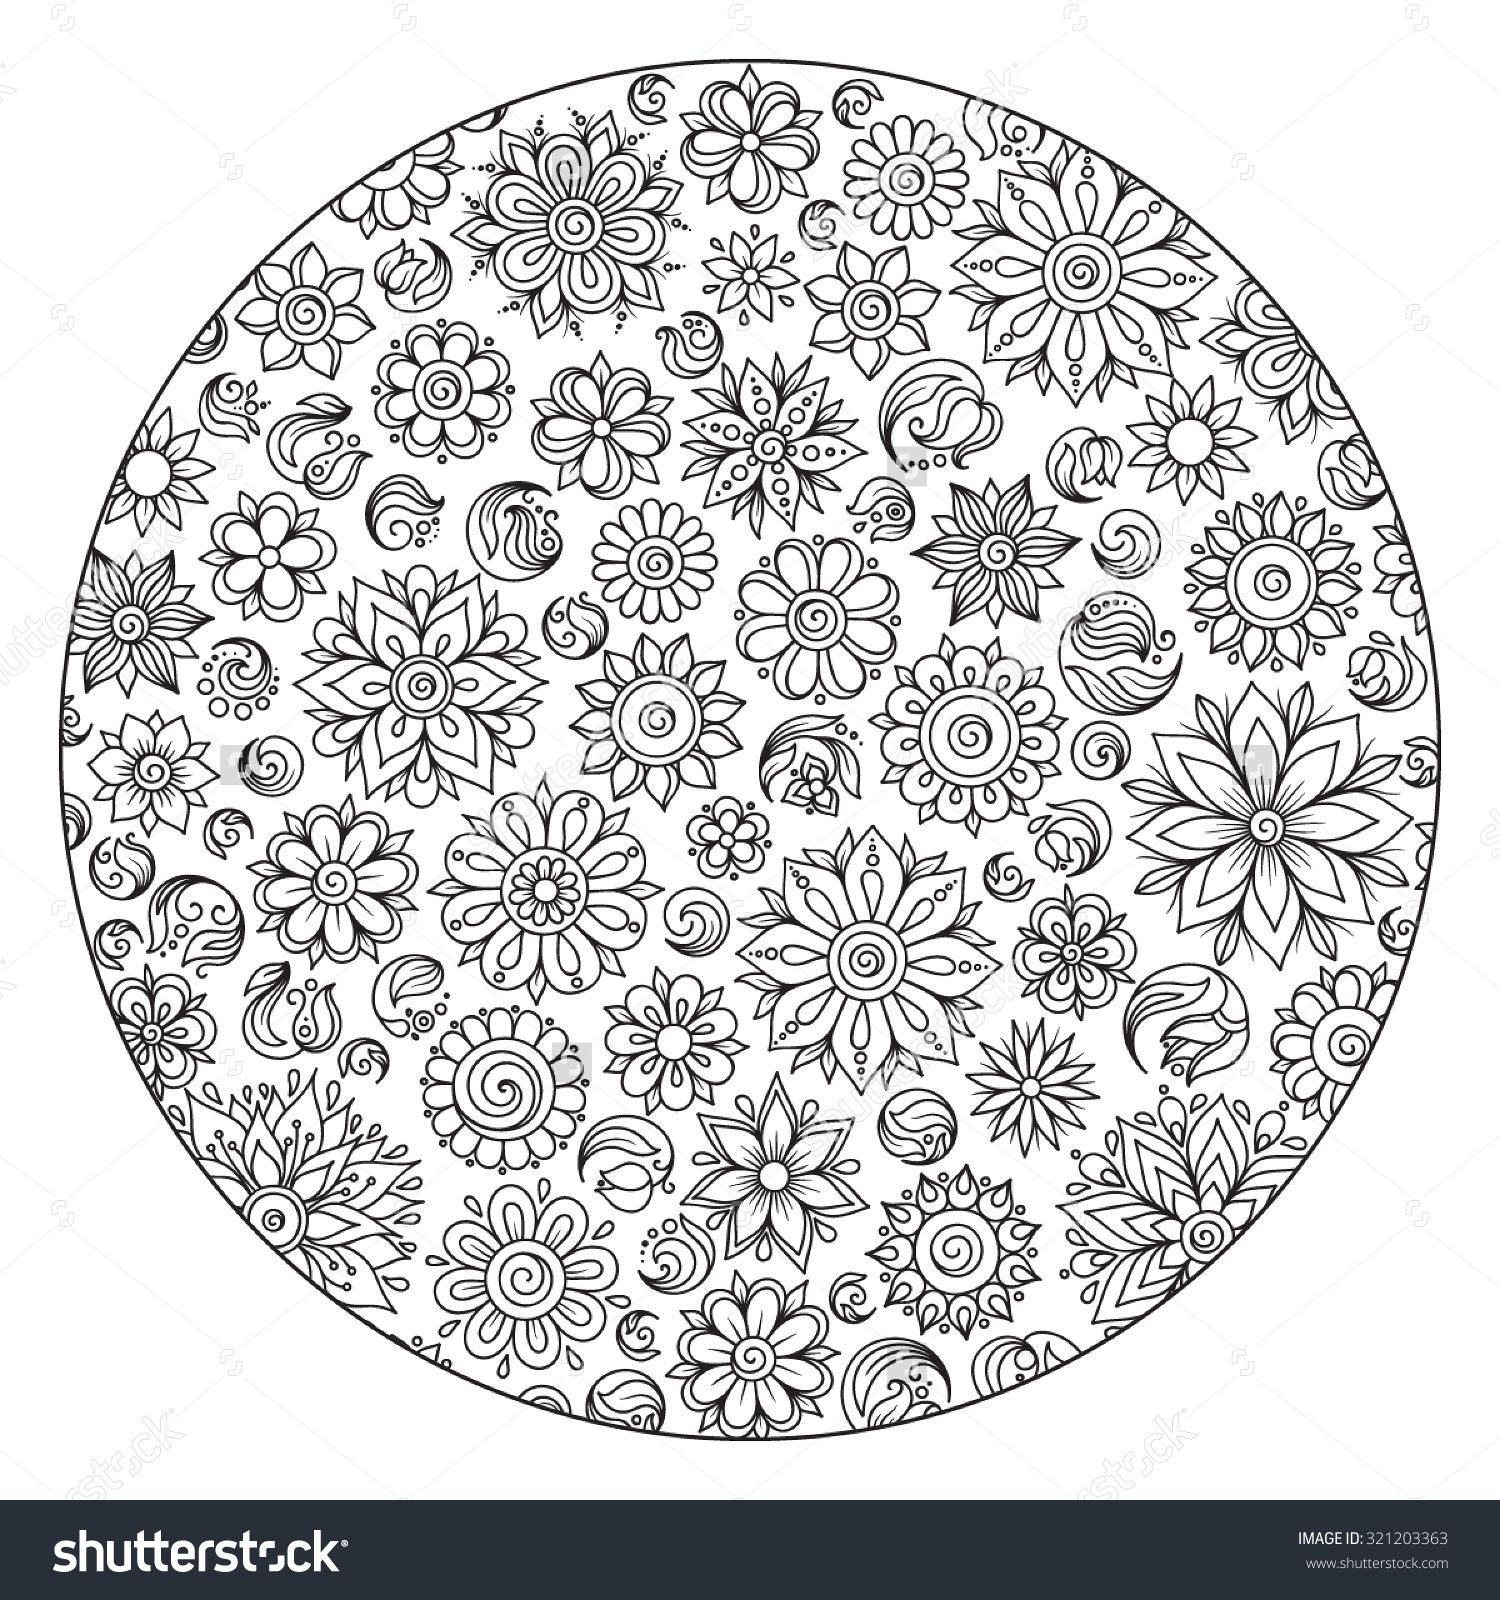 nature mandalas coloring pages - Google Search | Coloring pages ...